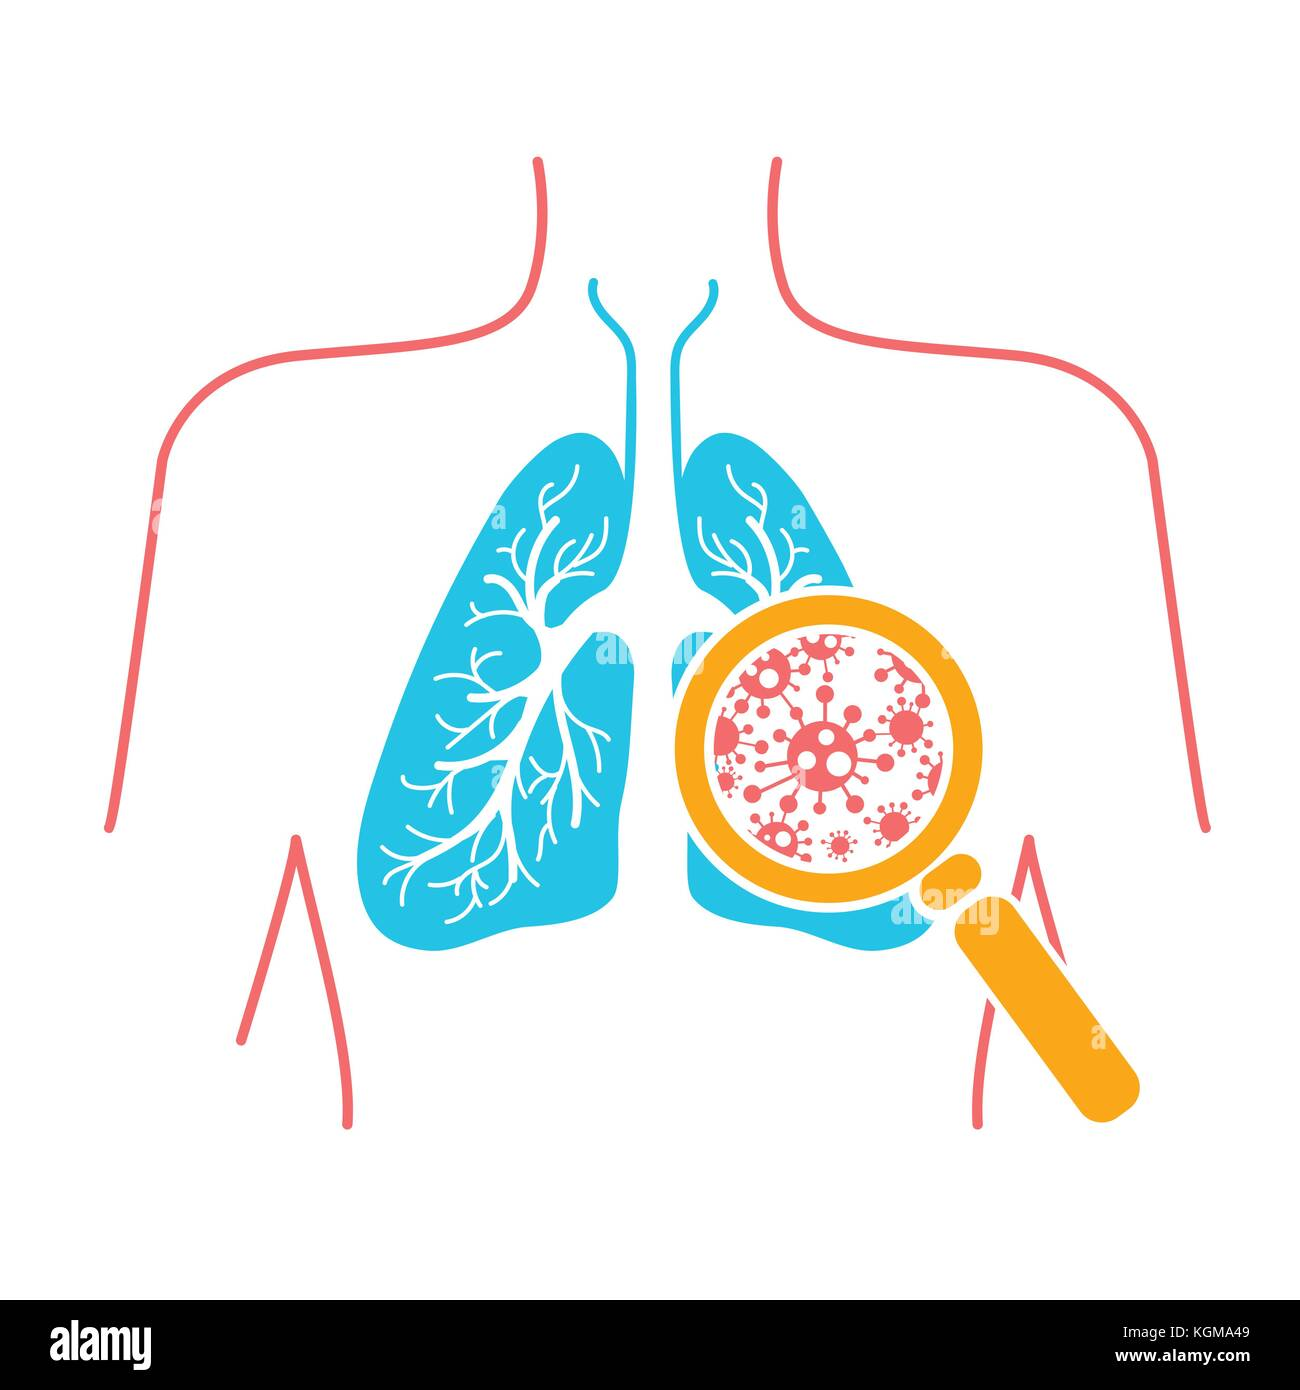 icon of lung disease, pneumonia, asthma, cancer in the form of lung anatomy and viruses causing disease. Icon in - Stock Image